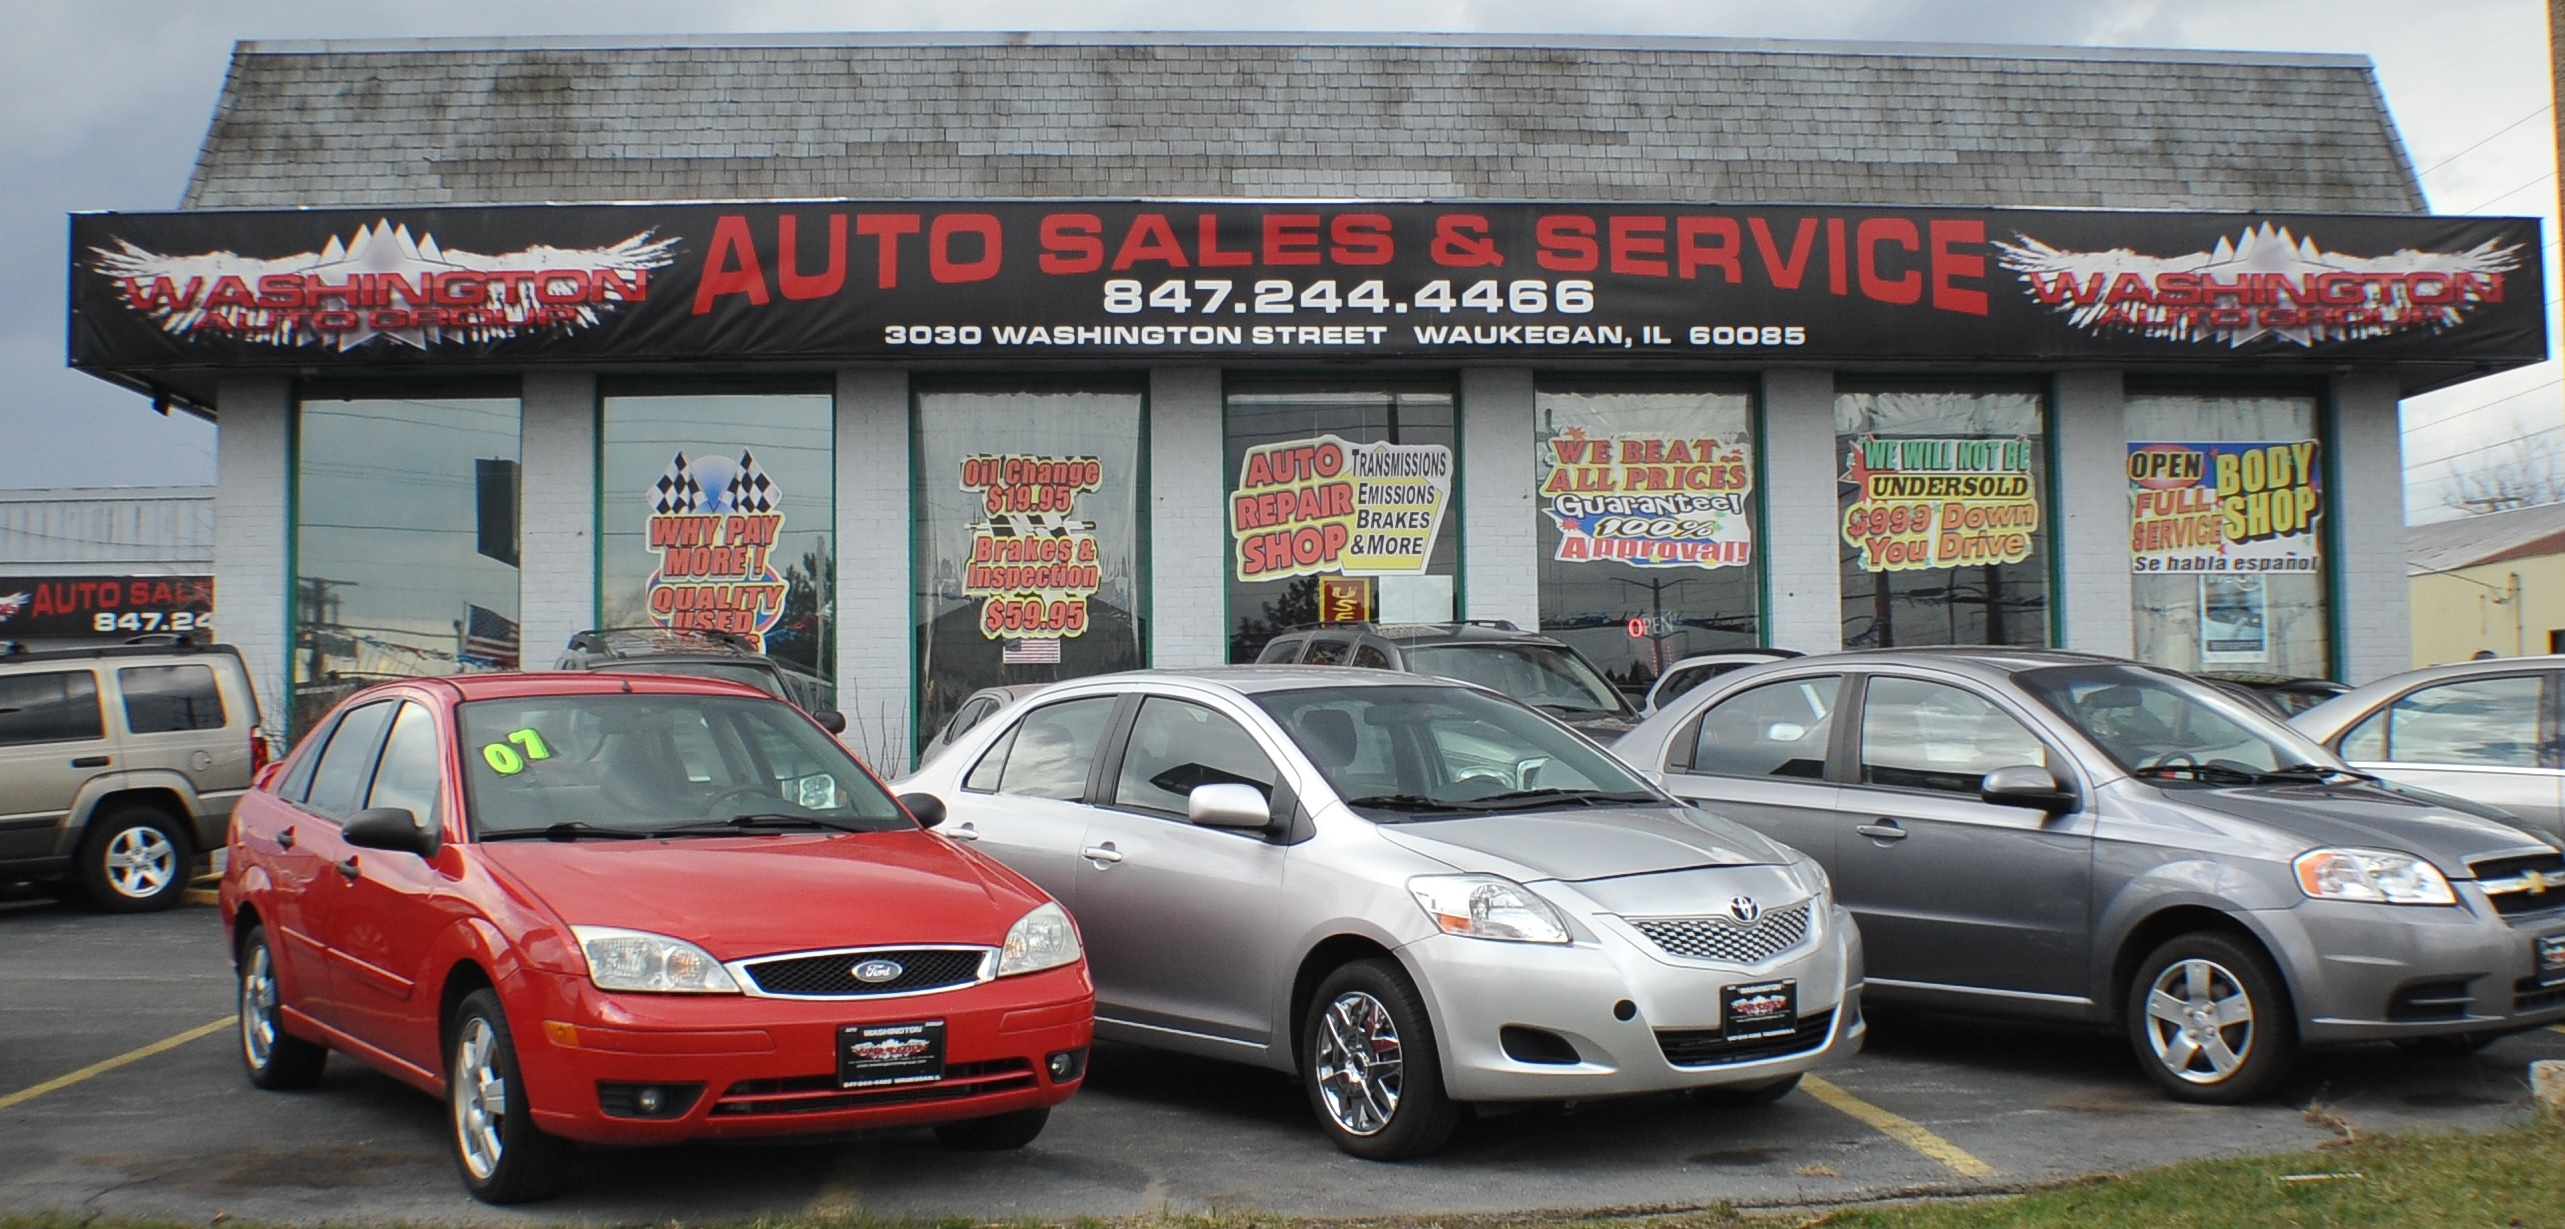 Washington Auto Group auto sales service repair used car body shop